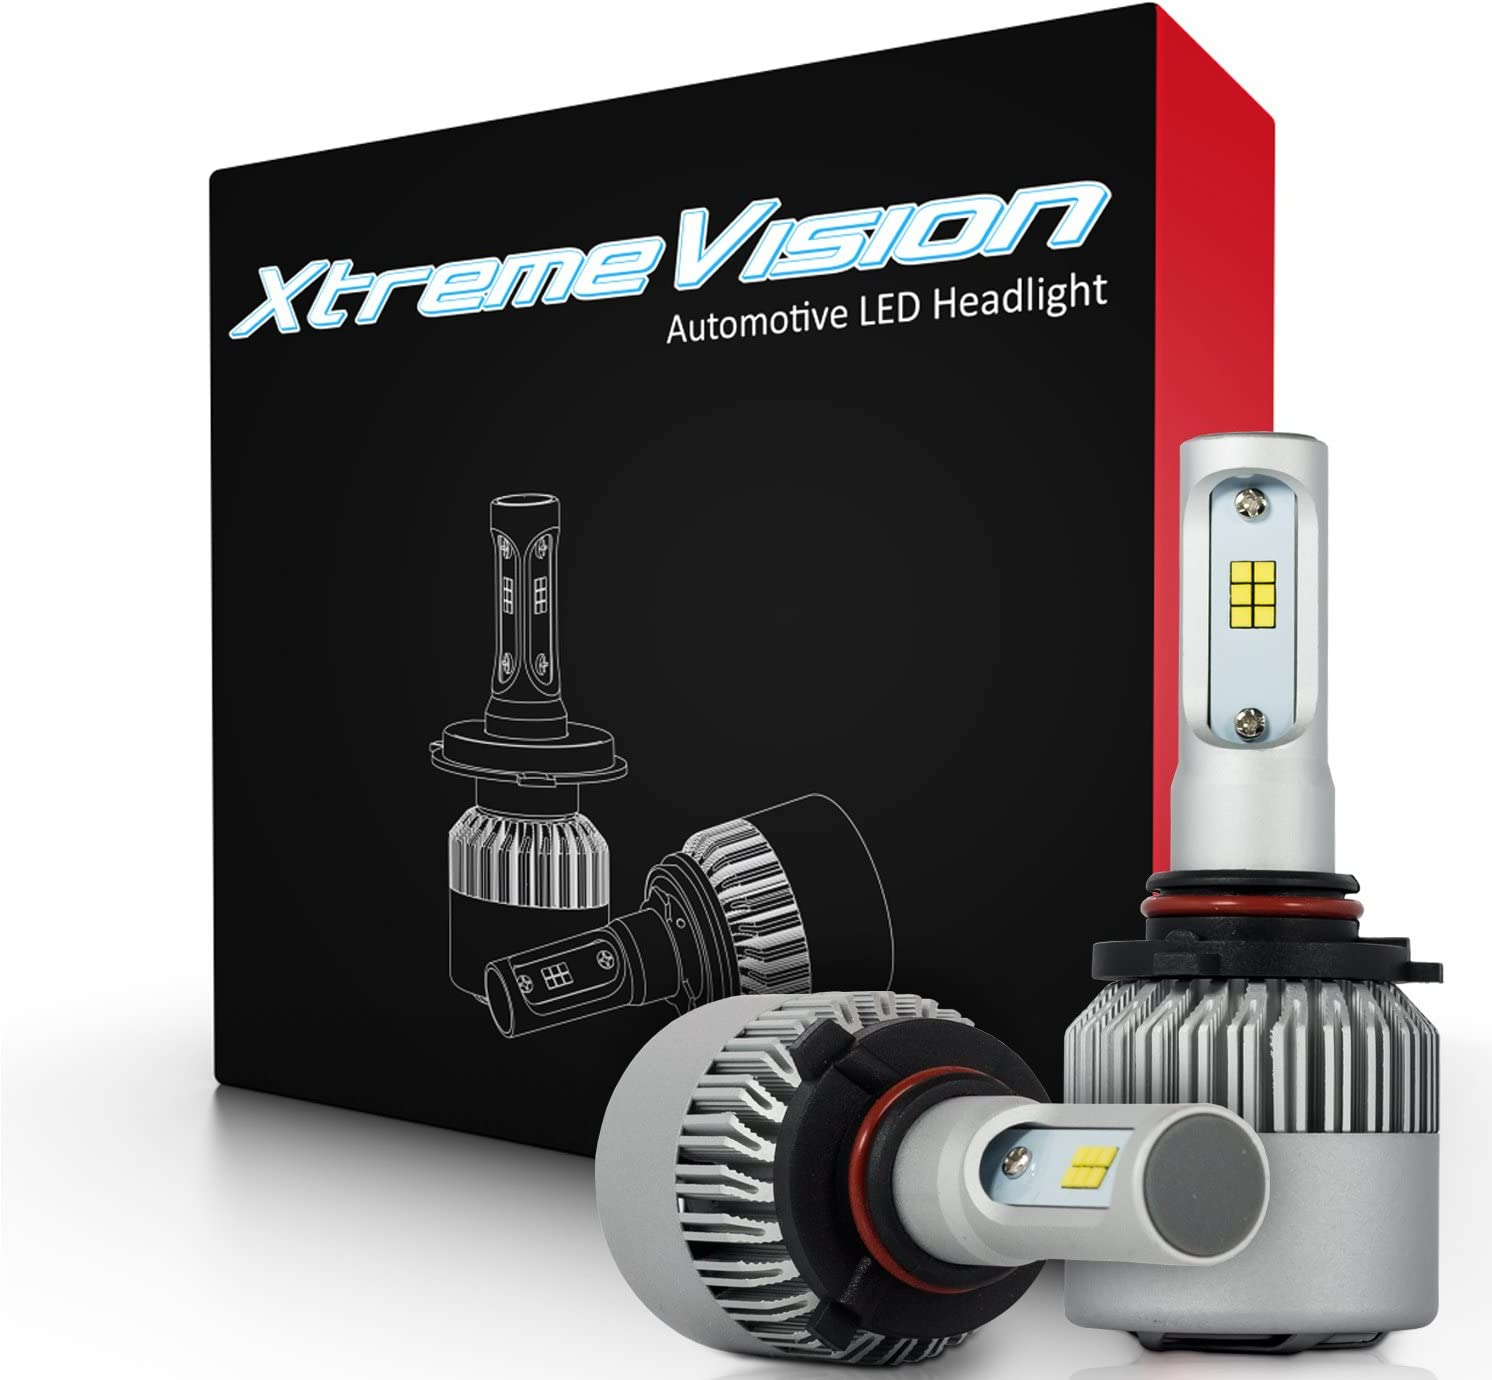 XtremeVision 7G 72W 16,000LM - 9005 LED Headlight Conversion Kit - 6500K CSP LED - 2019 Model